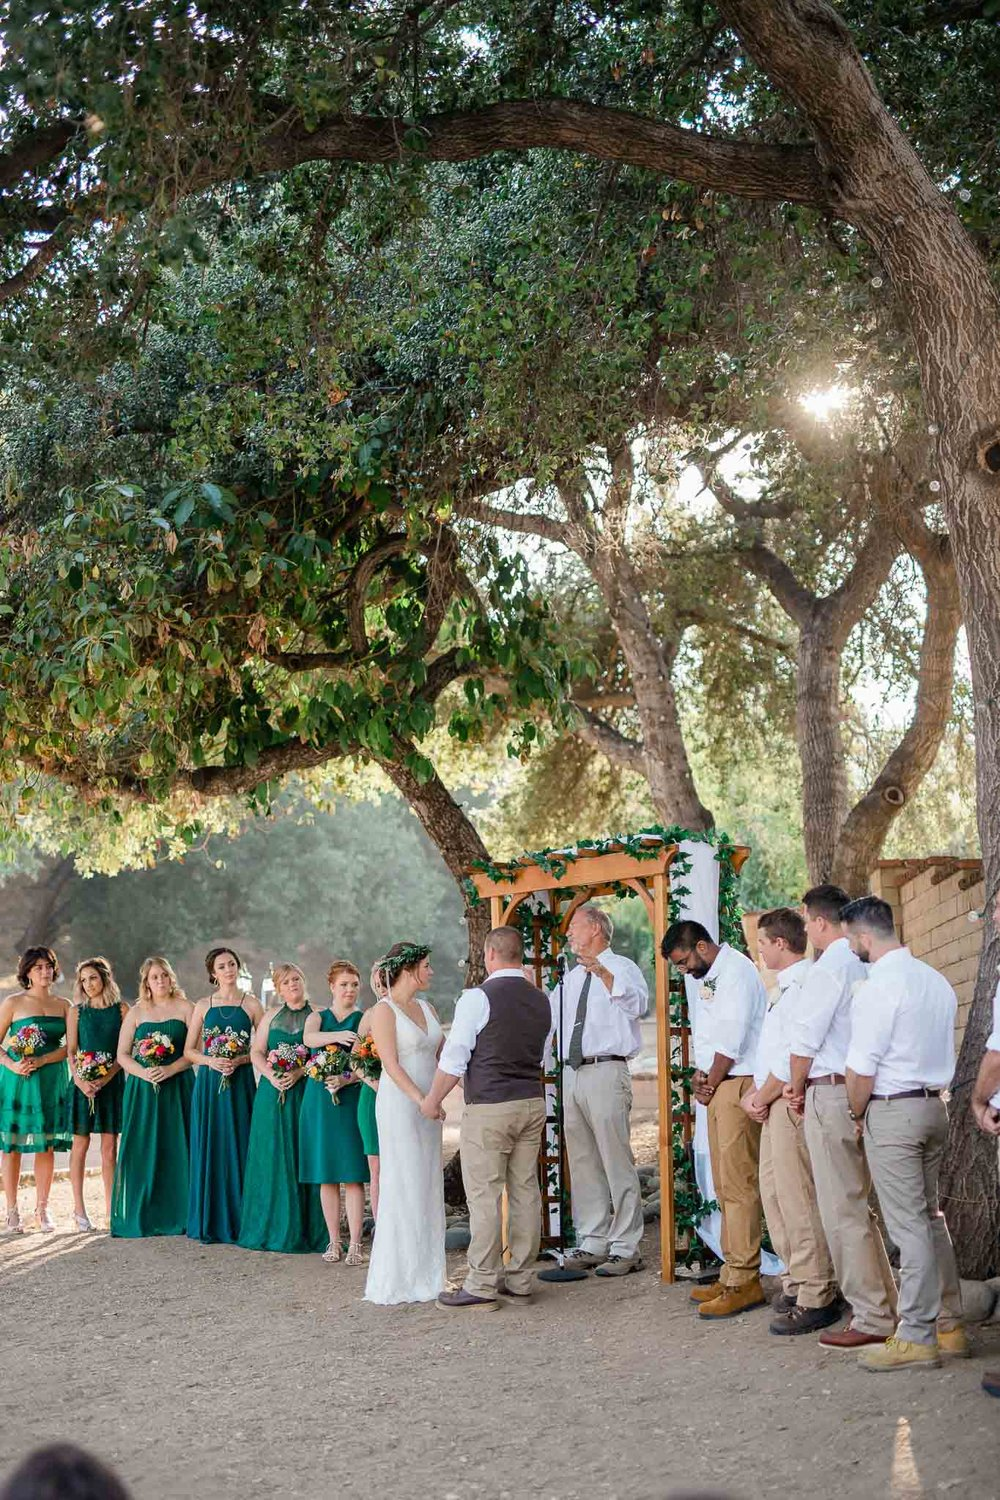 Backyard wedding ceremony in Pasadena, California